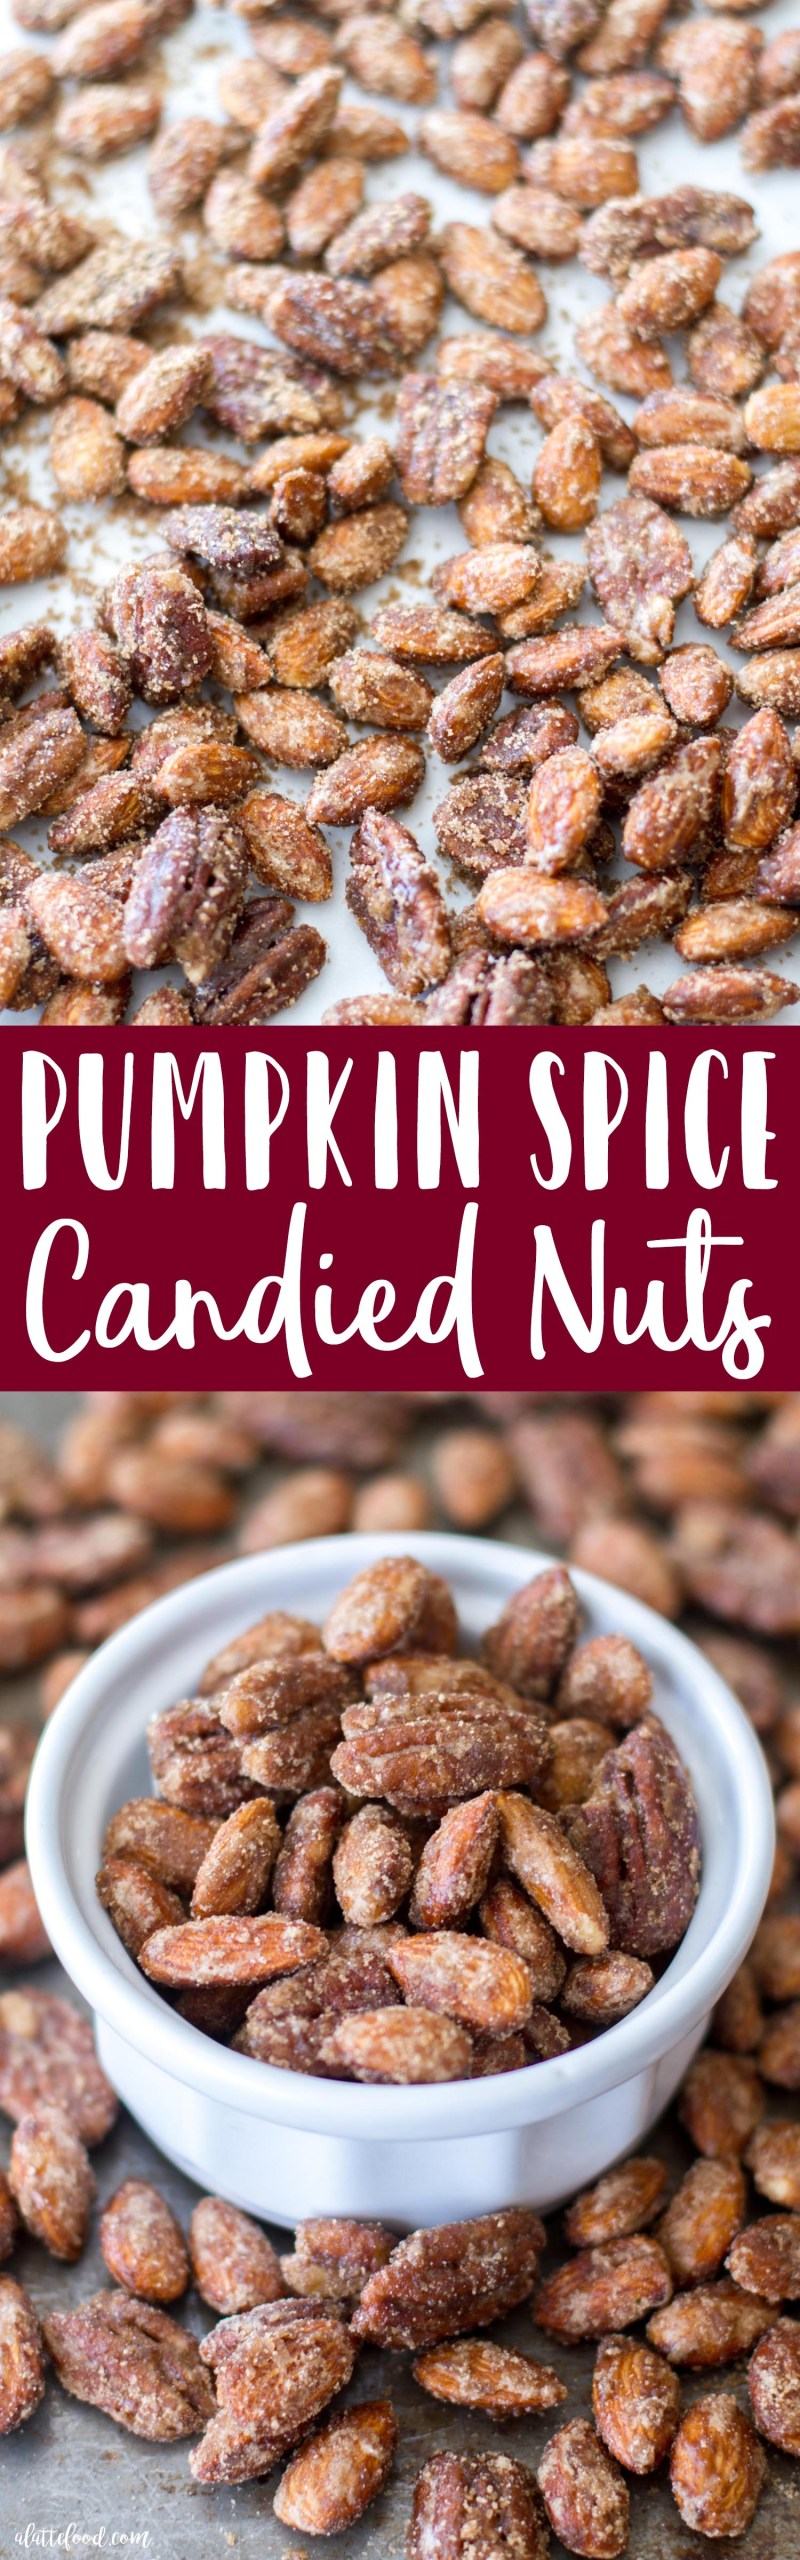 These sugared almonds and pecans are candied with a blend of pumpkin pie spice, white sugar, and brown sugar to make the most irresistible snack! Candied nuts are the ultimate fall snack, and this Pumpkin Spice Candied Nuts recipe is SO simple! how to make candied nuts, pumpkin candied pecans